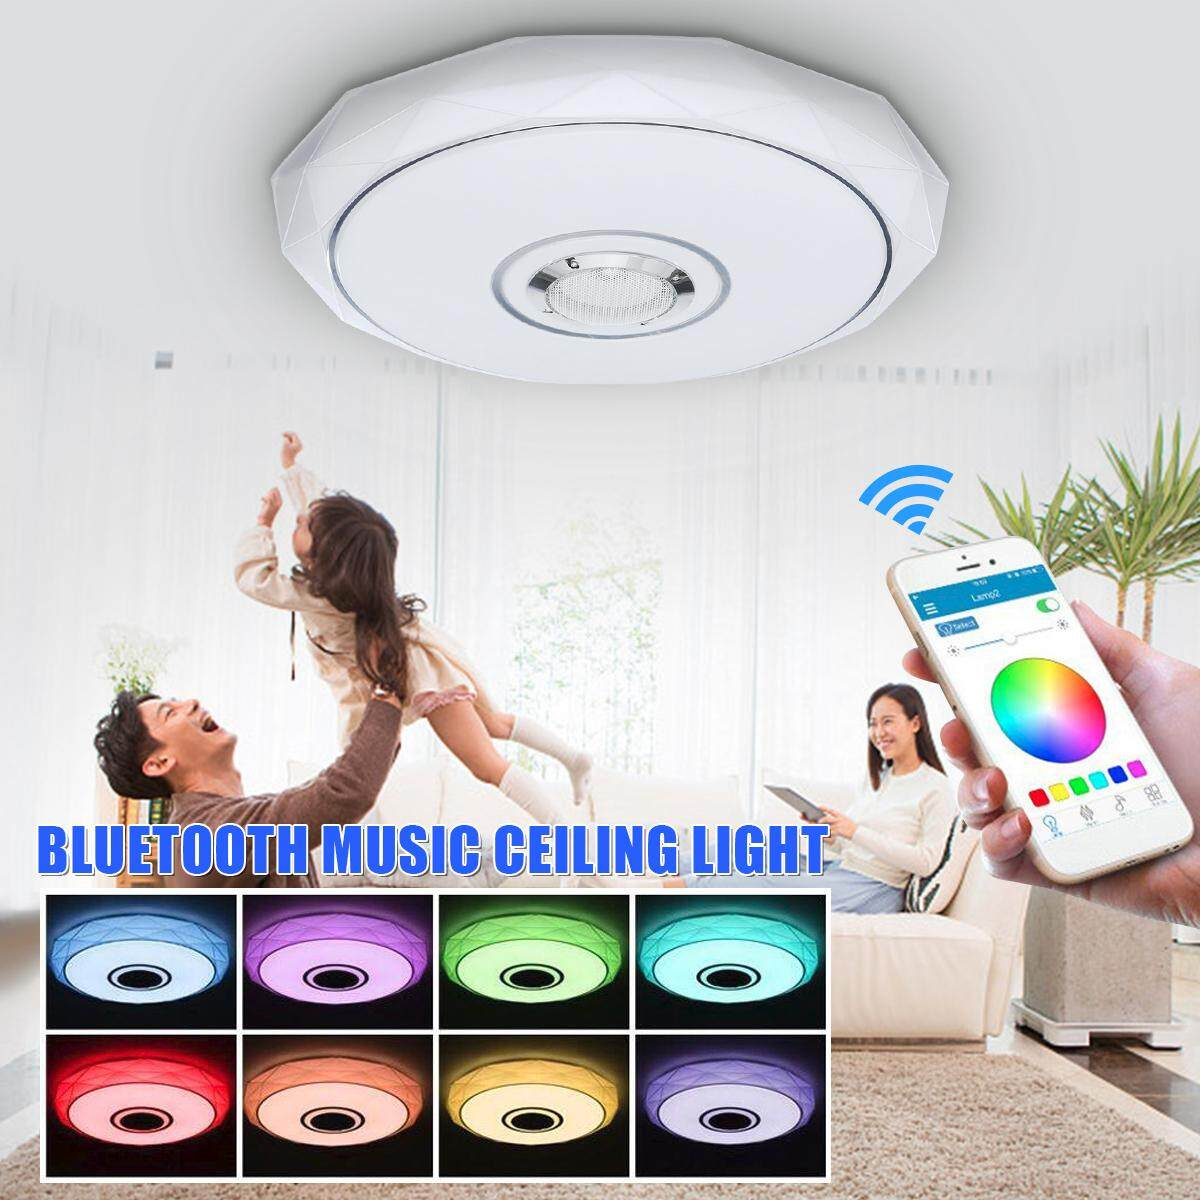 【Free Shipping + Flash Deal】LED Bluetooth Flush Mount Ceiling Light Lamp Phone APP Control Music Speaker Colorful